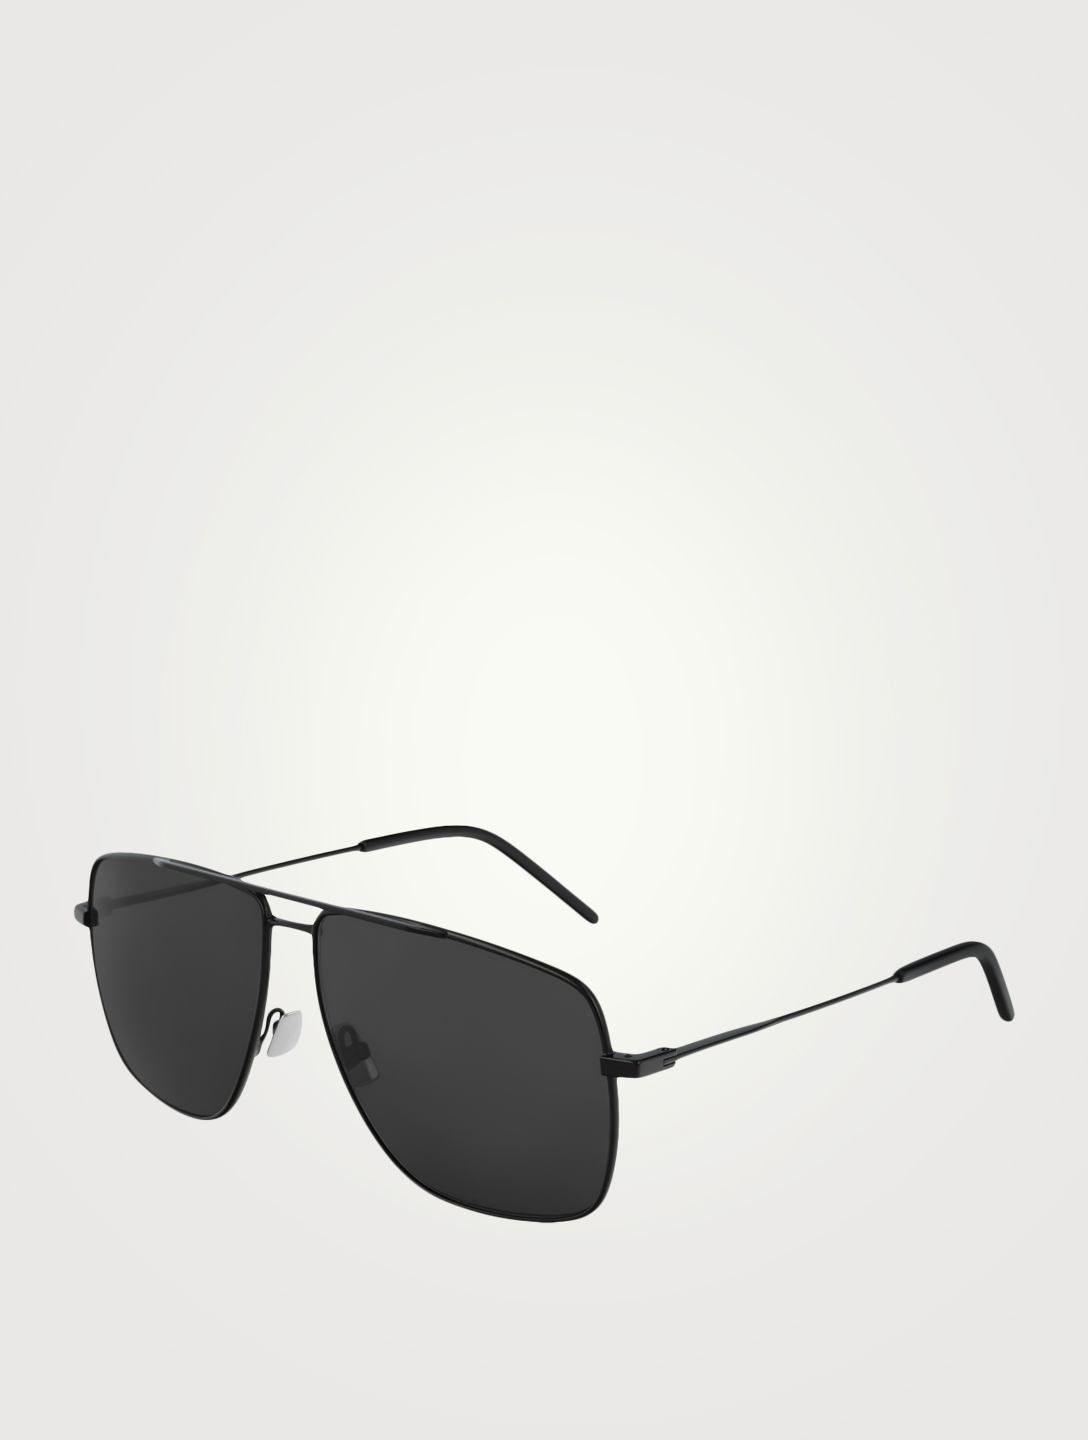 SAINT LAURENT SL 298 Aviator Sunglasses Men's Black